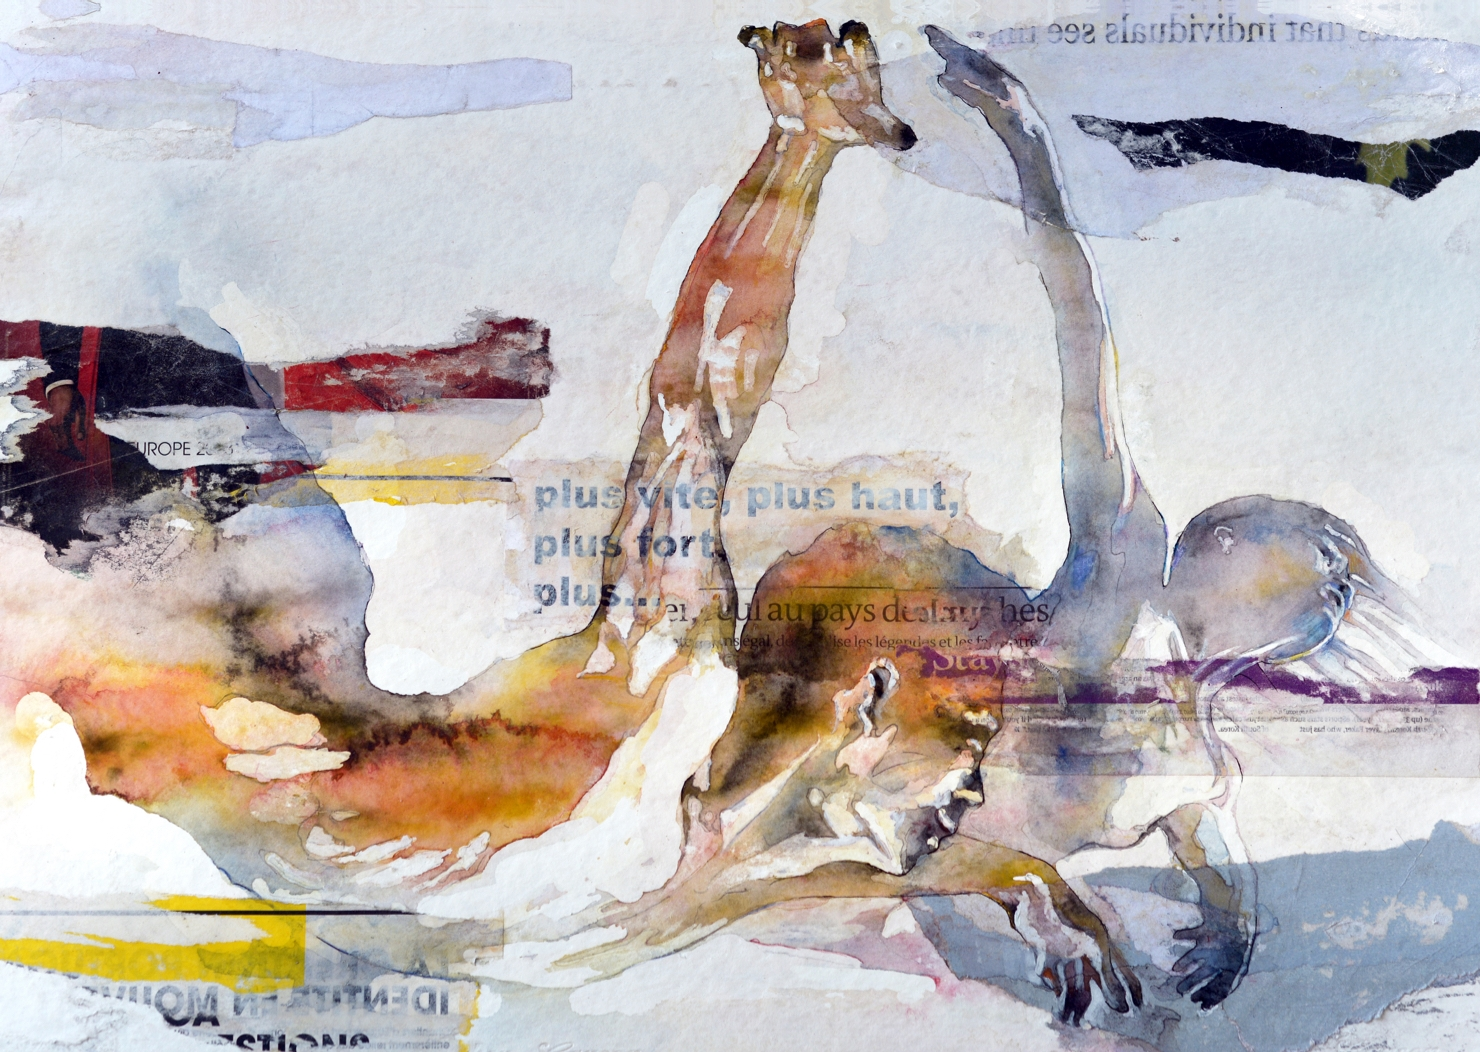 Bruce Clarke 8    Plus vite. Plus haut, Plus fort   Aquarelle/Collage